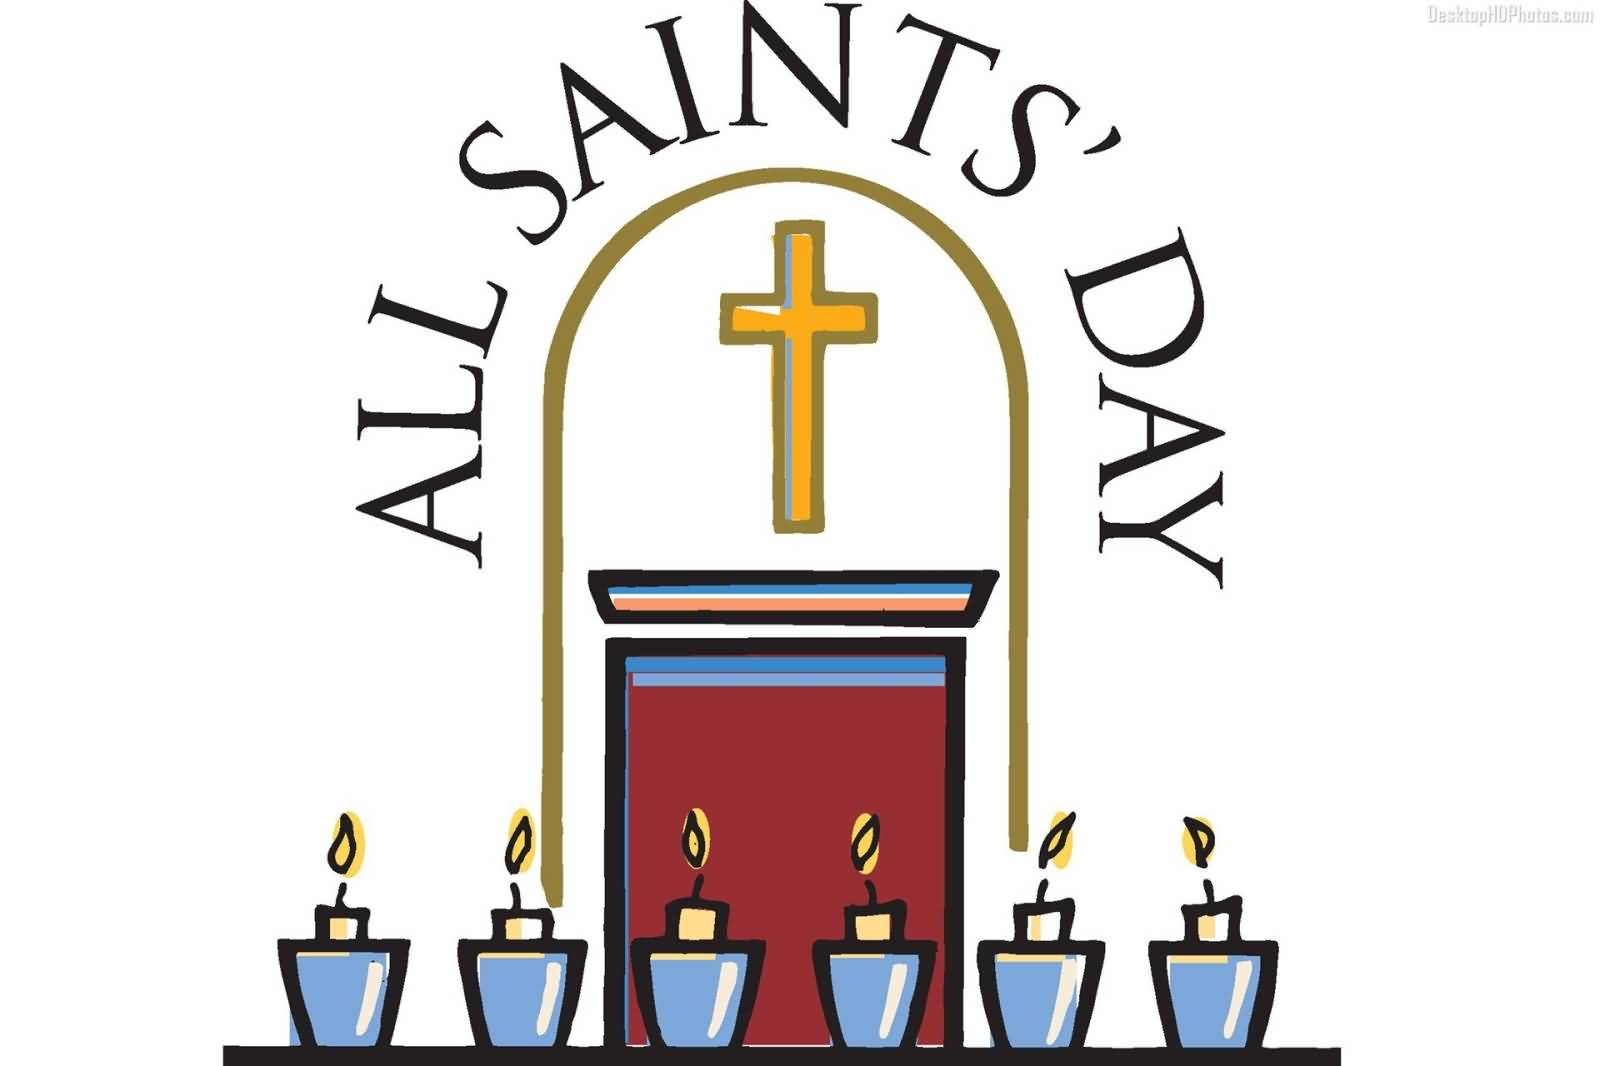 All souls day images clipart clip art black and white download All souls day clipart - Clip Art Library clip art black and white download